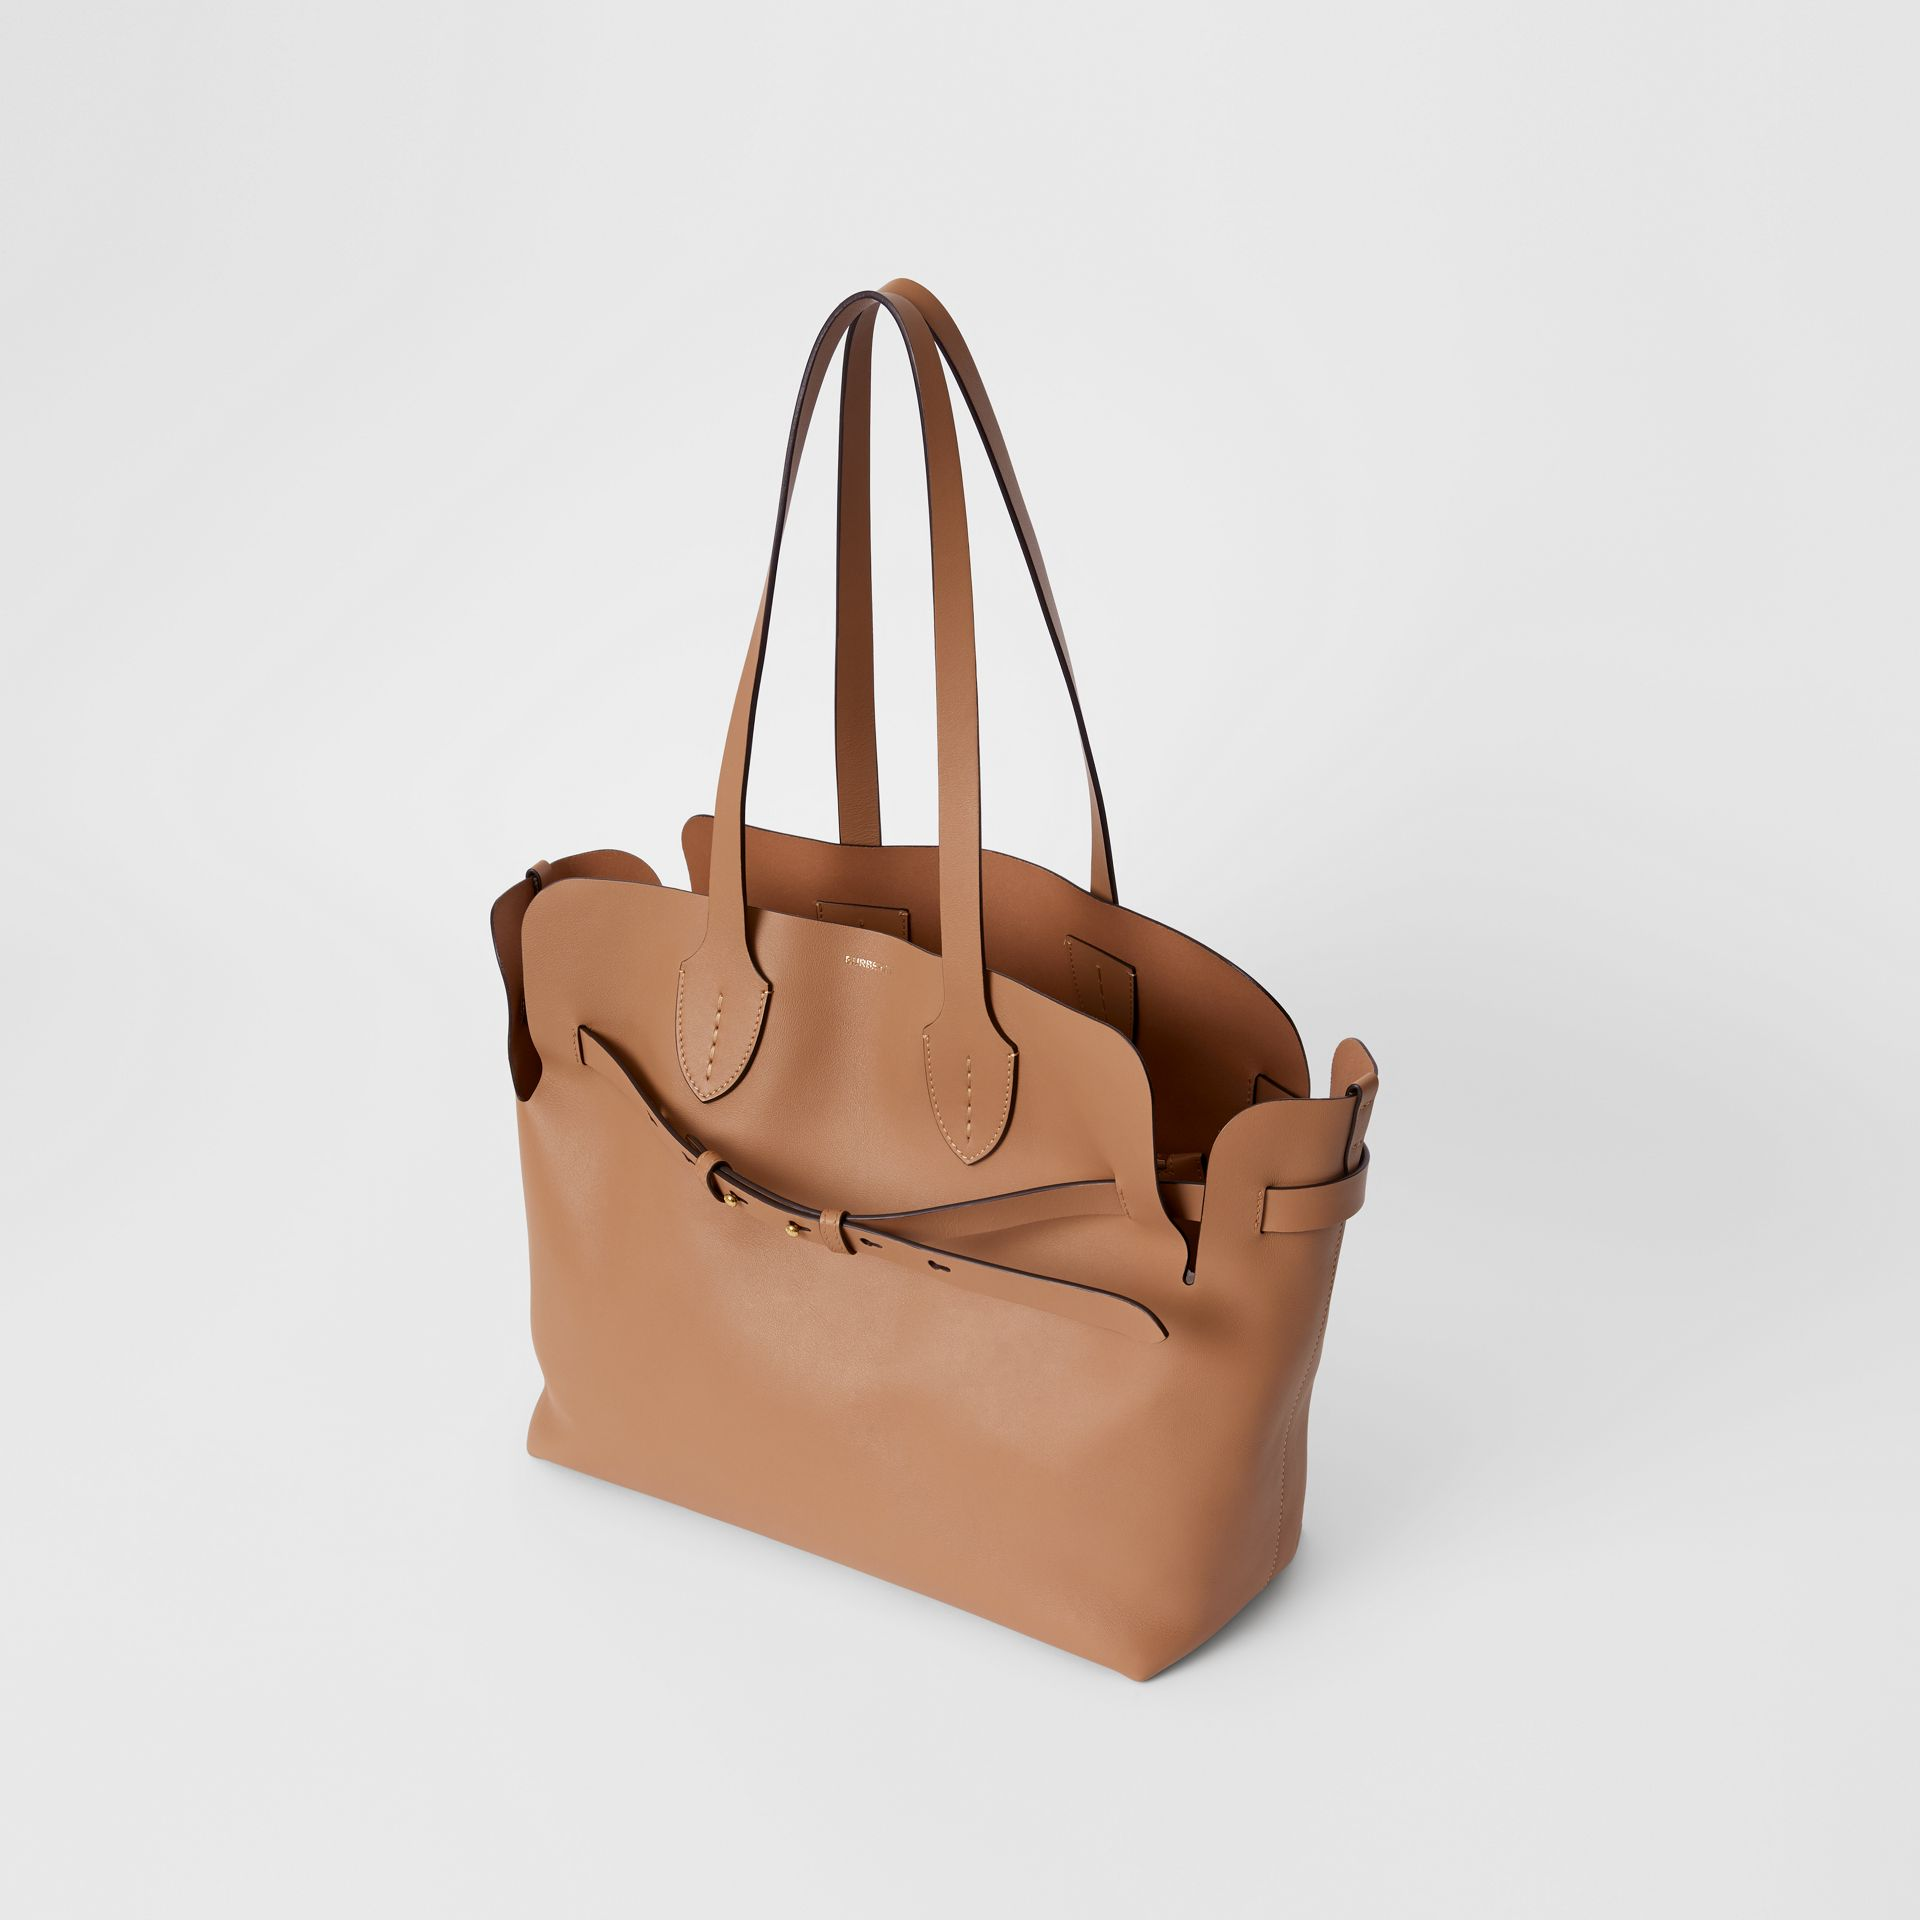 Sac The Belt moyen en cuir doux (Camel Clair) - Femme | Burberry - photo de la galerie 3